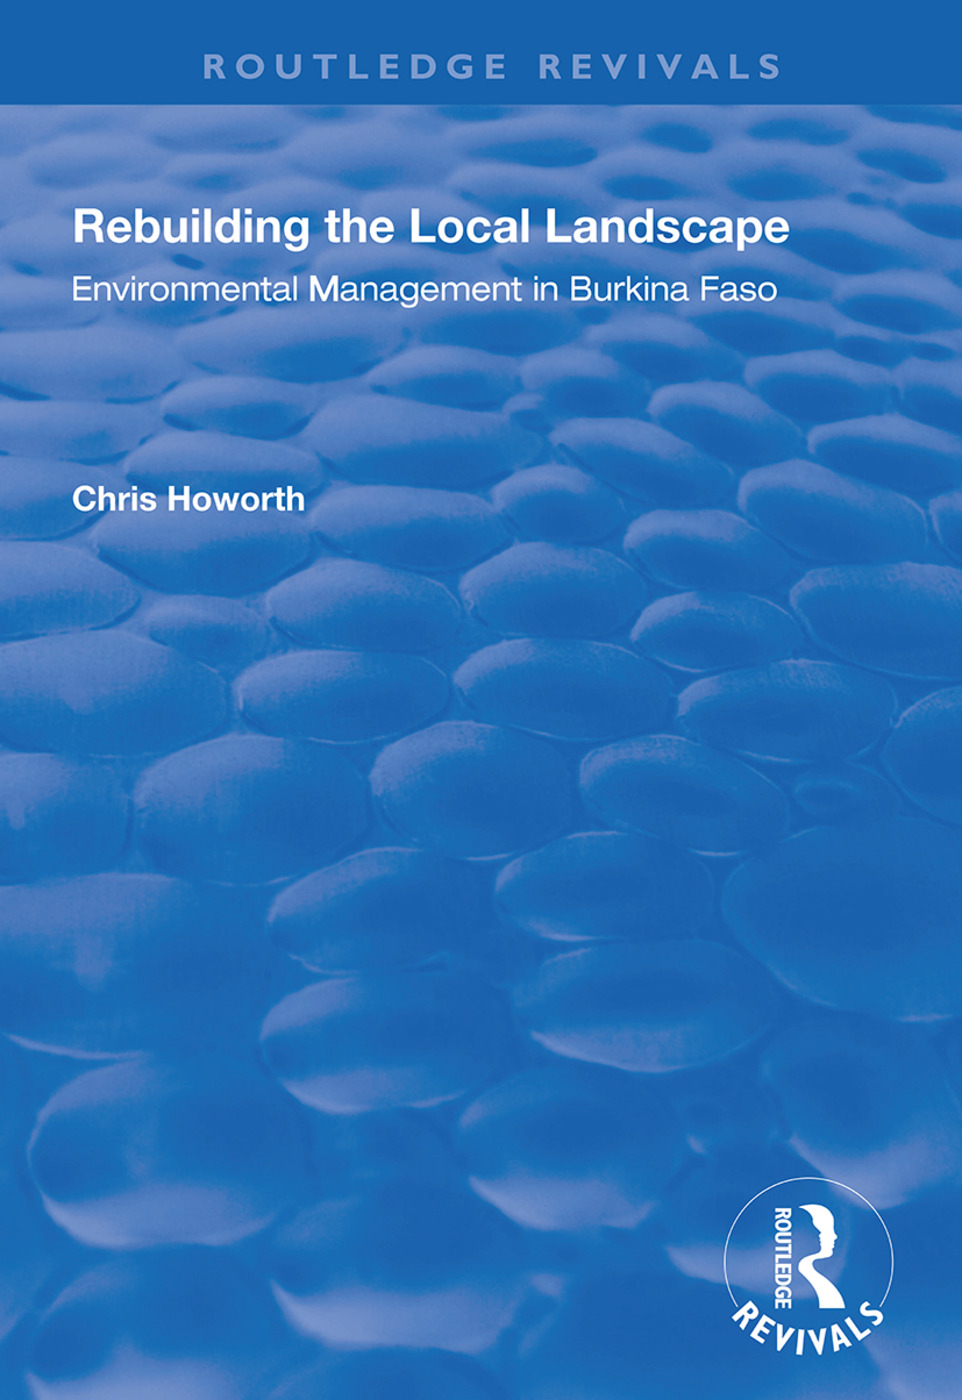 Rebuilding the Local Landscape: Environmental Management in Burkina Faso book cover